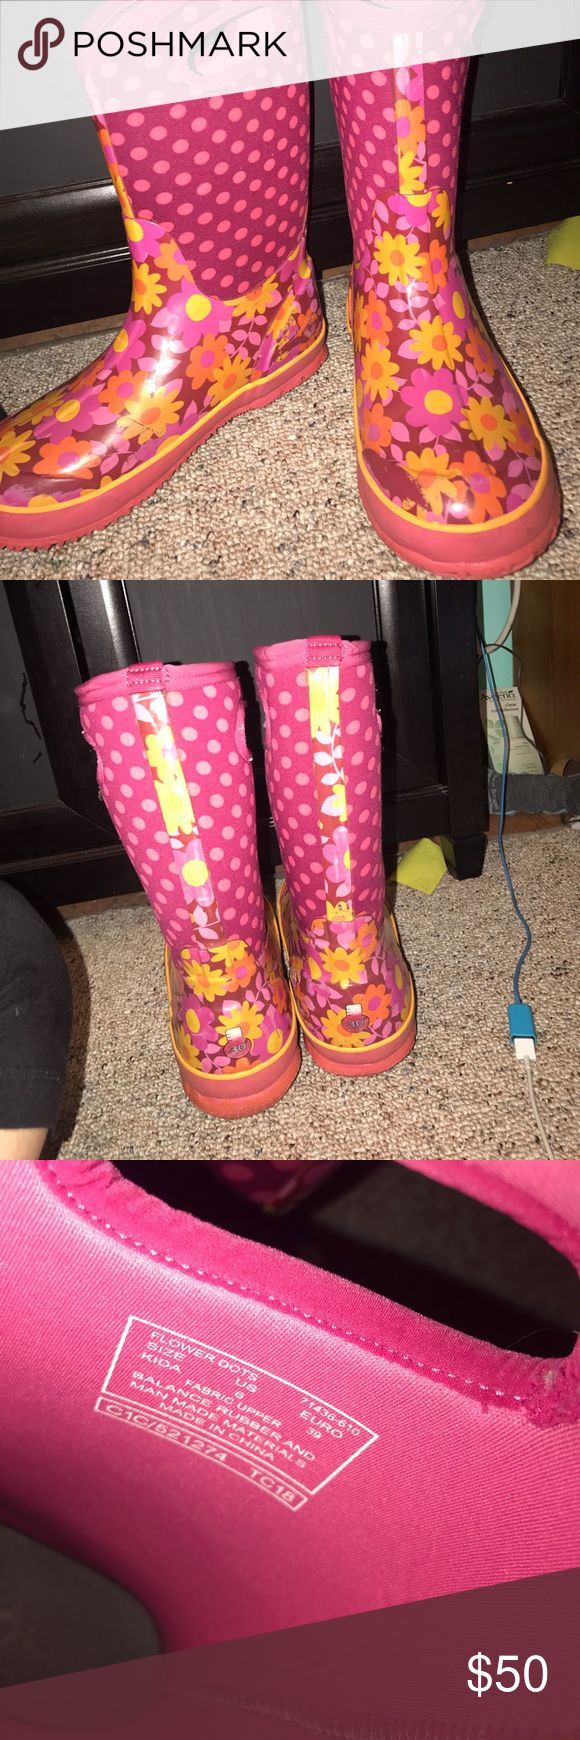 Pink flower winter boots These are bogs brand, pink flower winter boots, size 6 worn only for one winter Bogs Shoes Winter & Rain Boots